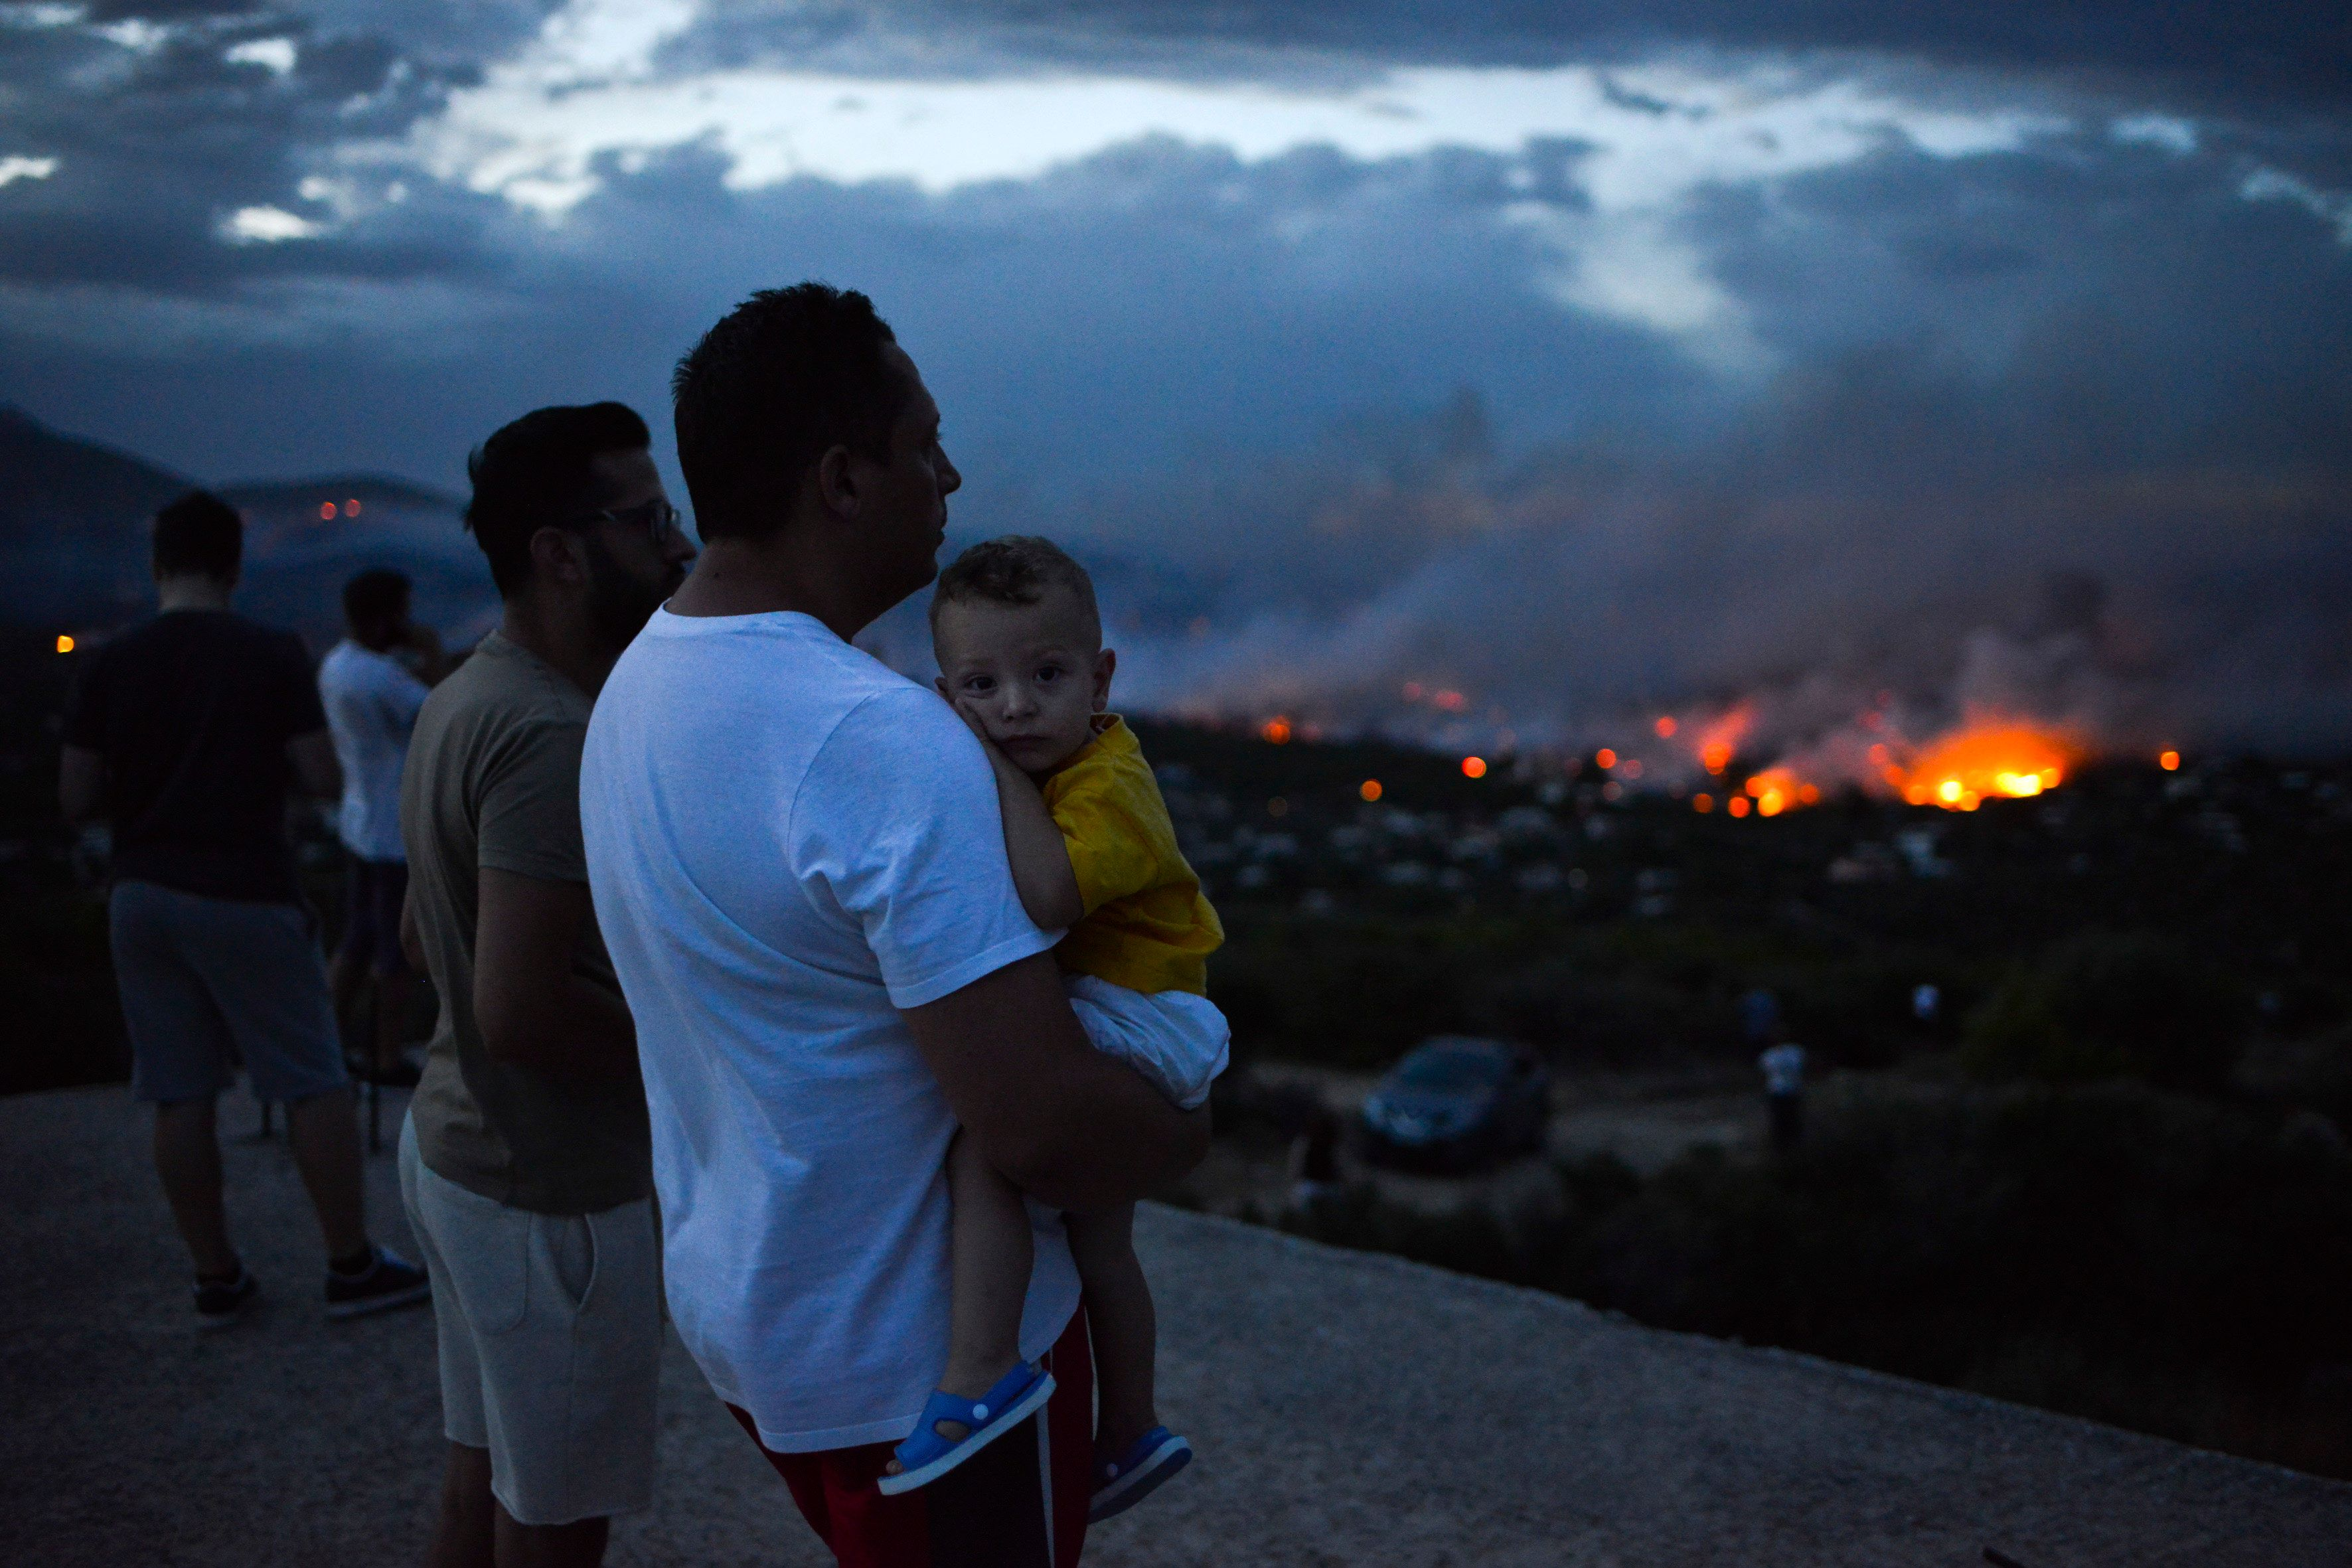 Is It Safe To Travel To Greece? Advice For Tourists As Wildfires Kill Dozens Outside